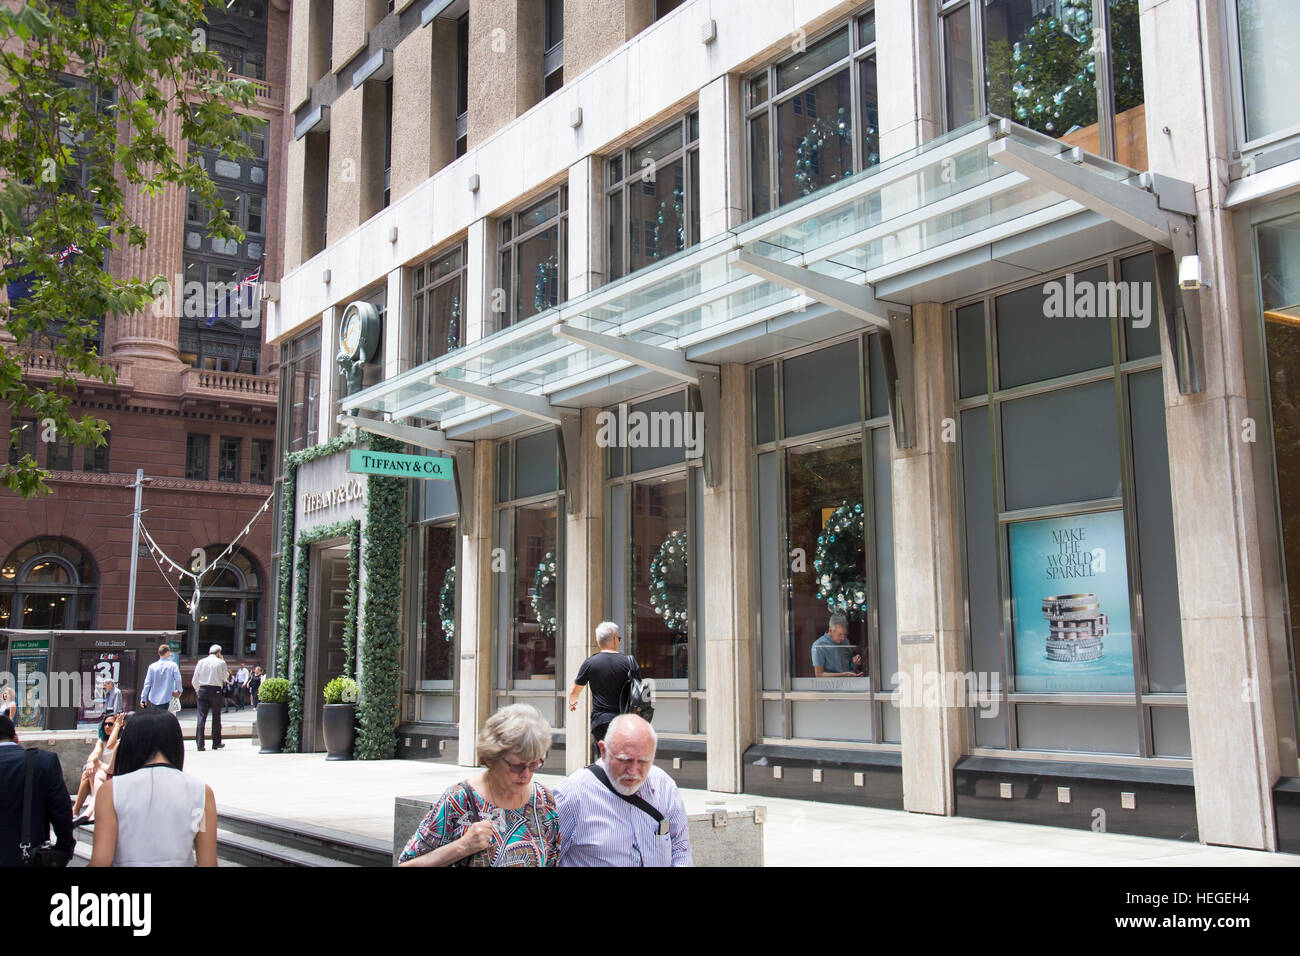 1de7aa932e7 Tiffany luxury goods and jewelry store shop in Castlereagh Stock ...